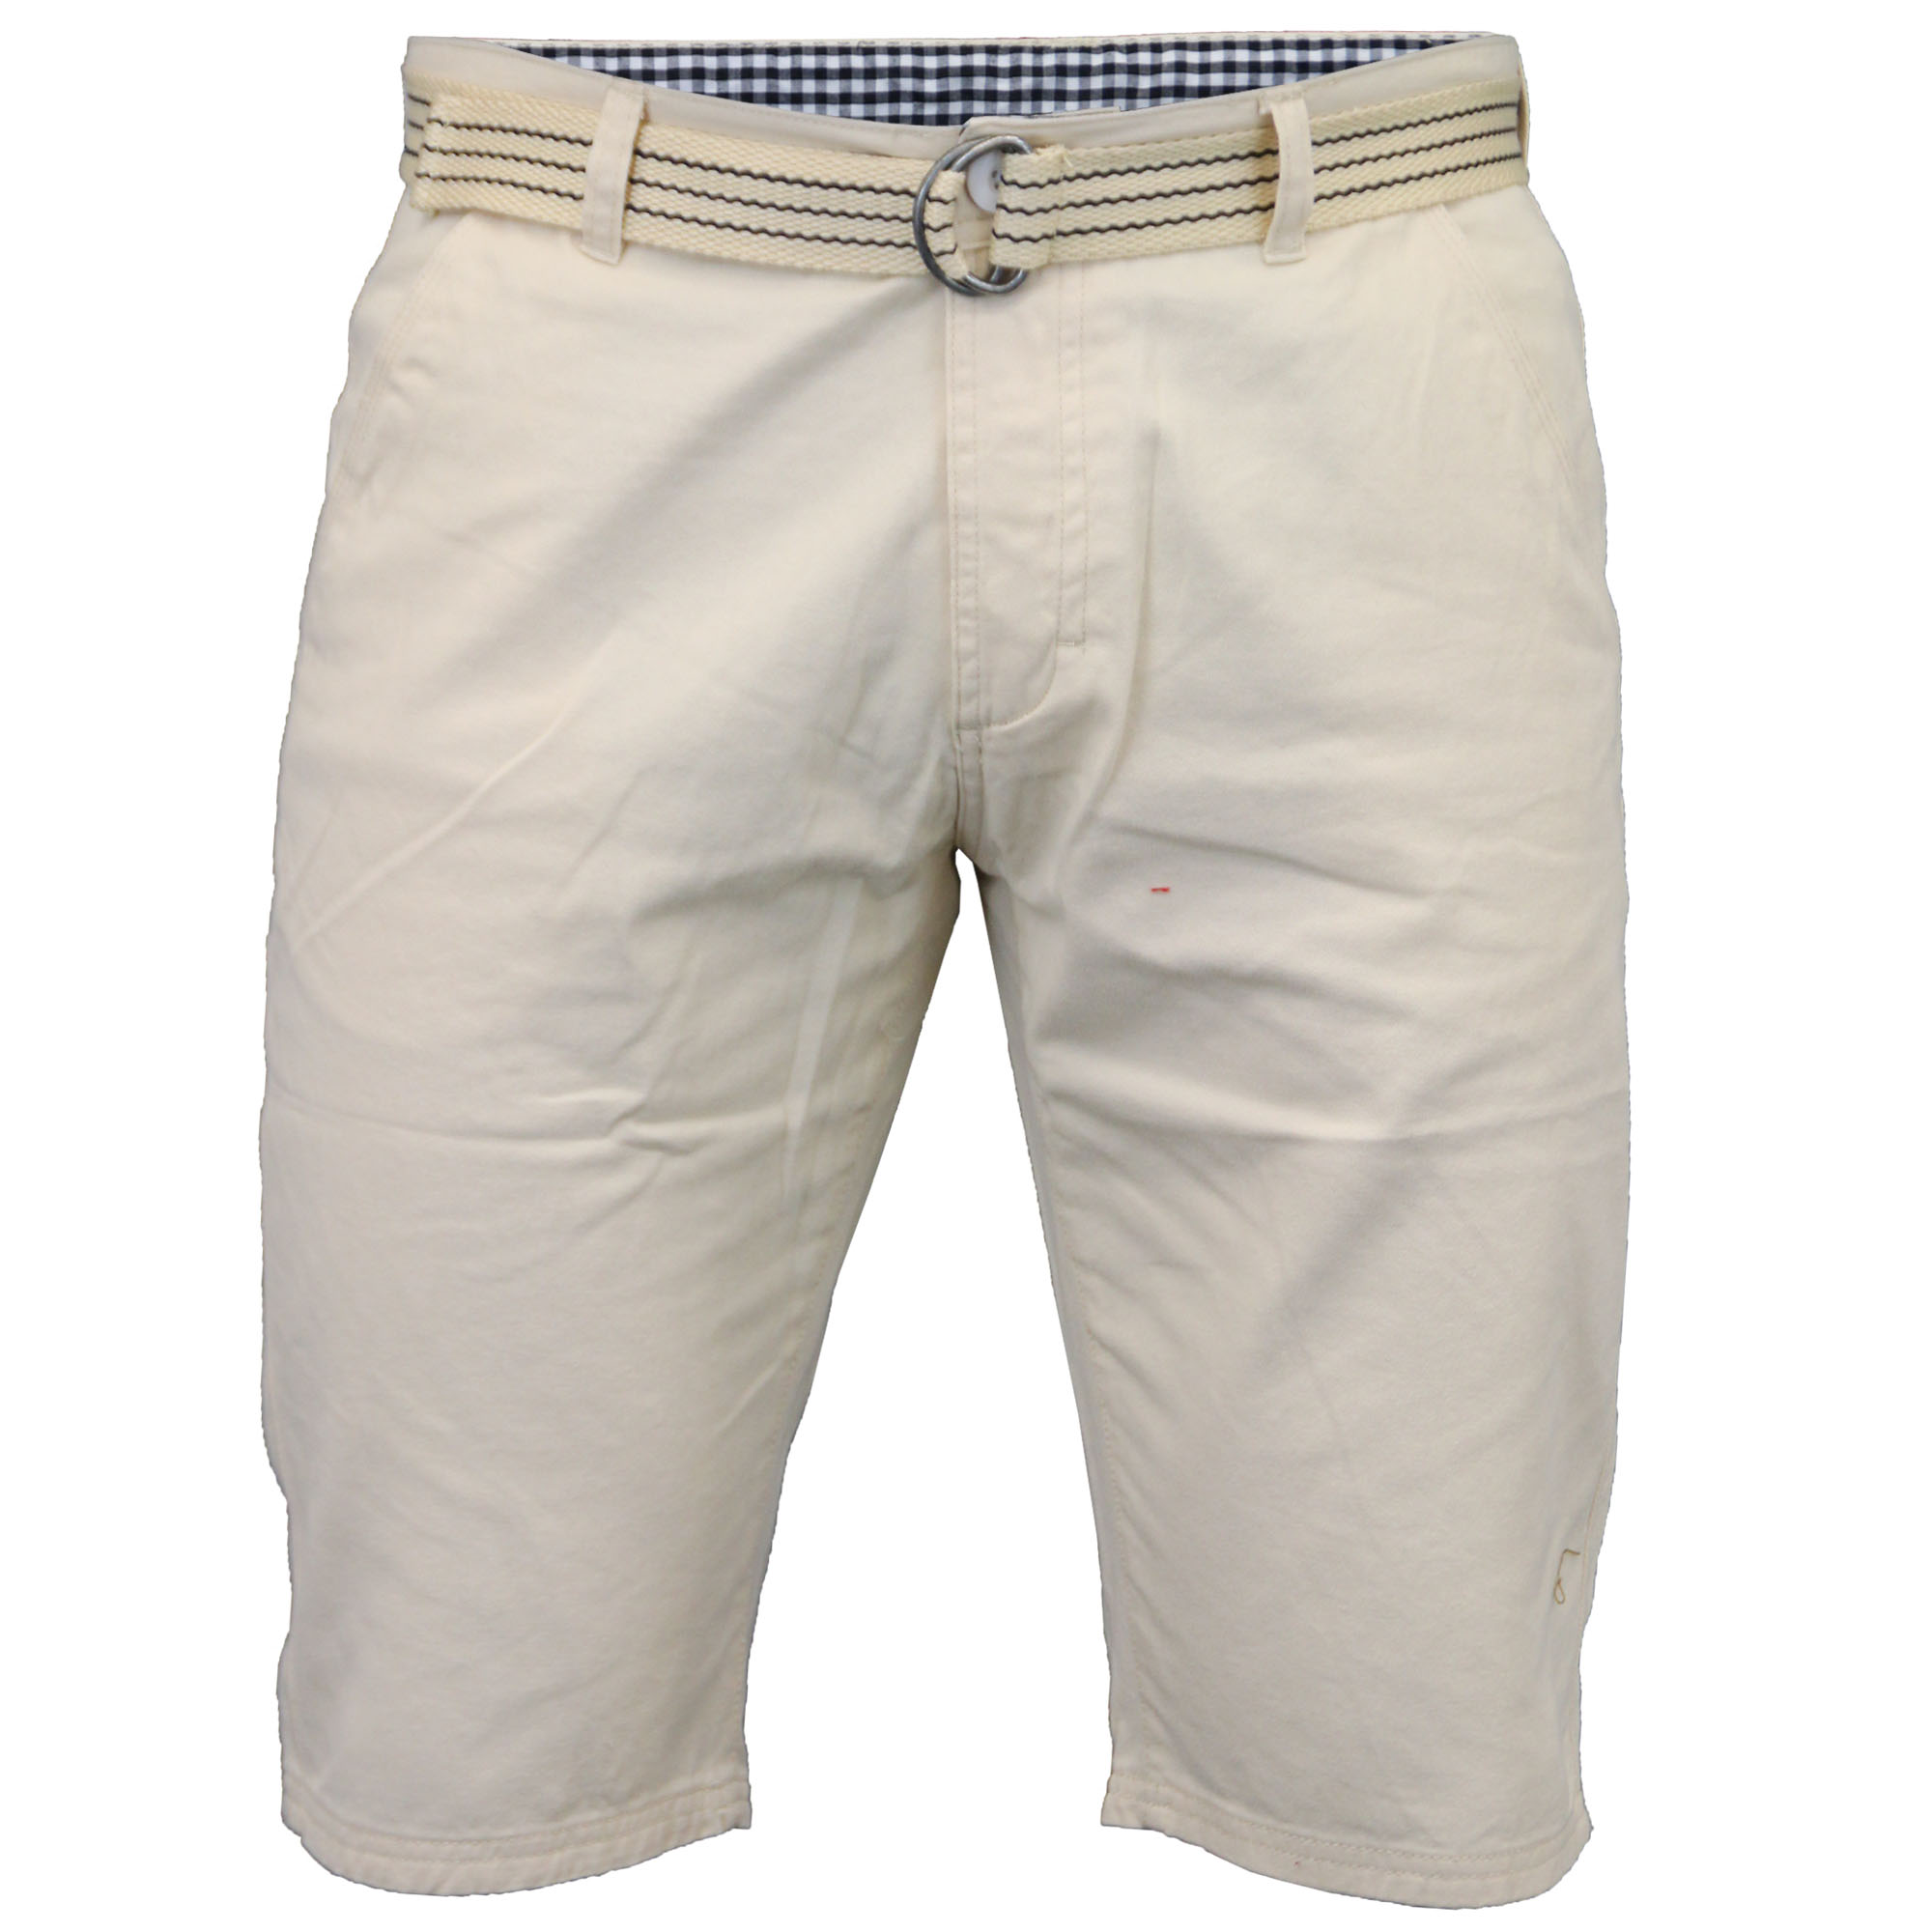 Mens Chino Shorts Kushiro Bottoms Denim Knee Length Free BELT ...